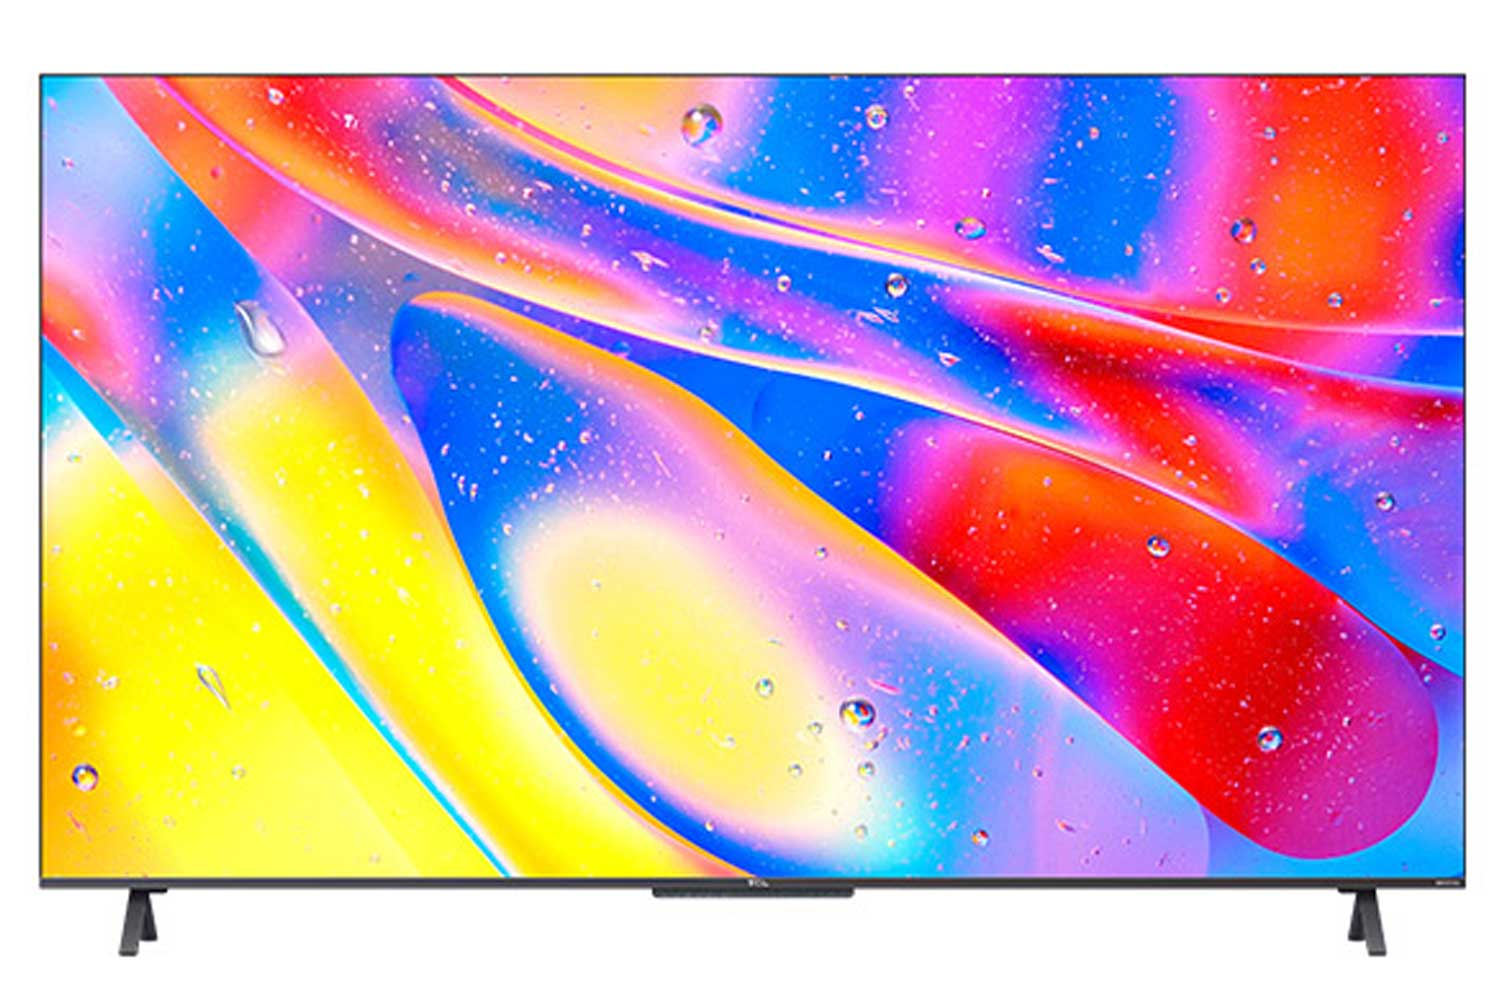 QLED Tivi 4K TCL 50C725 50 inch Smart Android TV